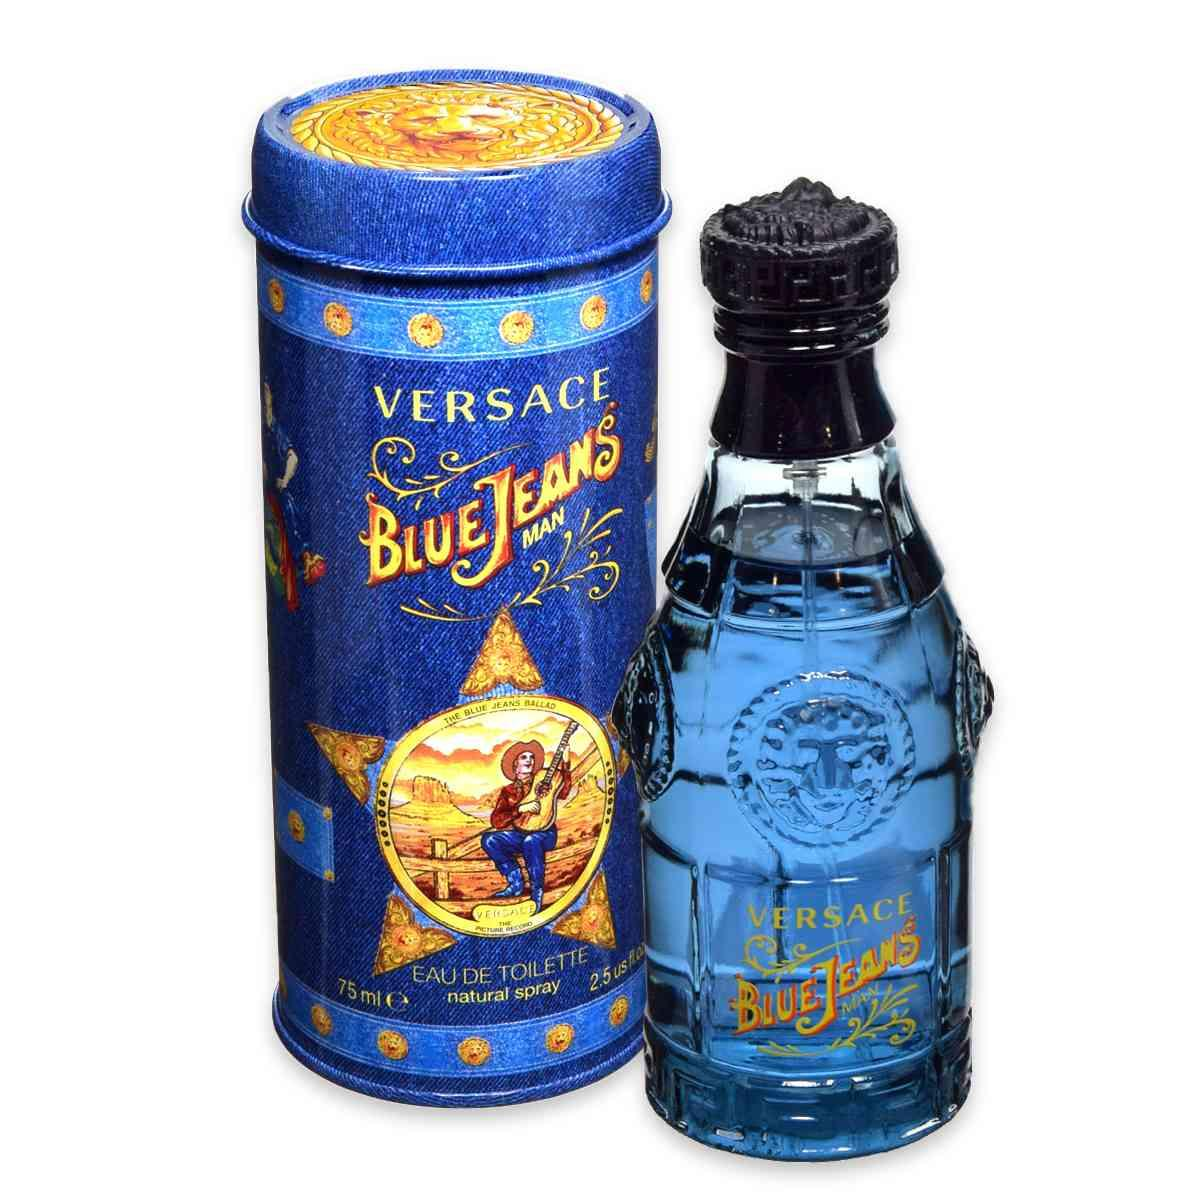 Blue jeans di versace edt 75ml vapo